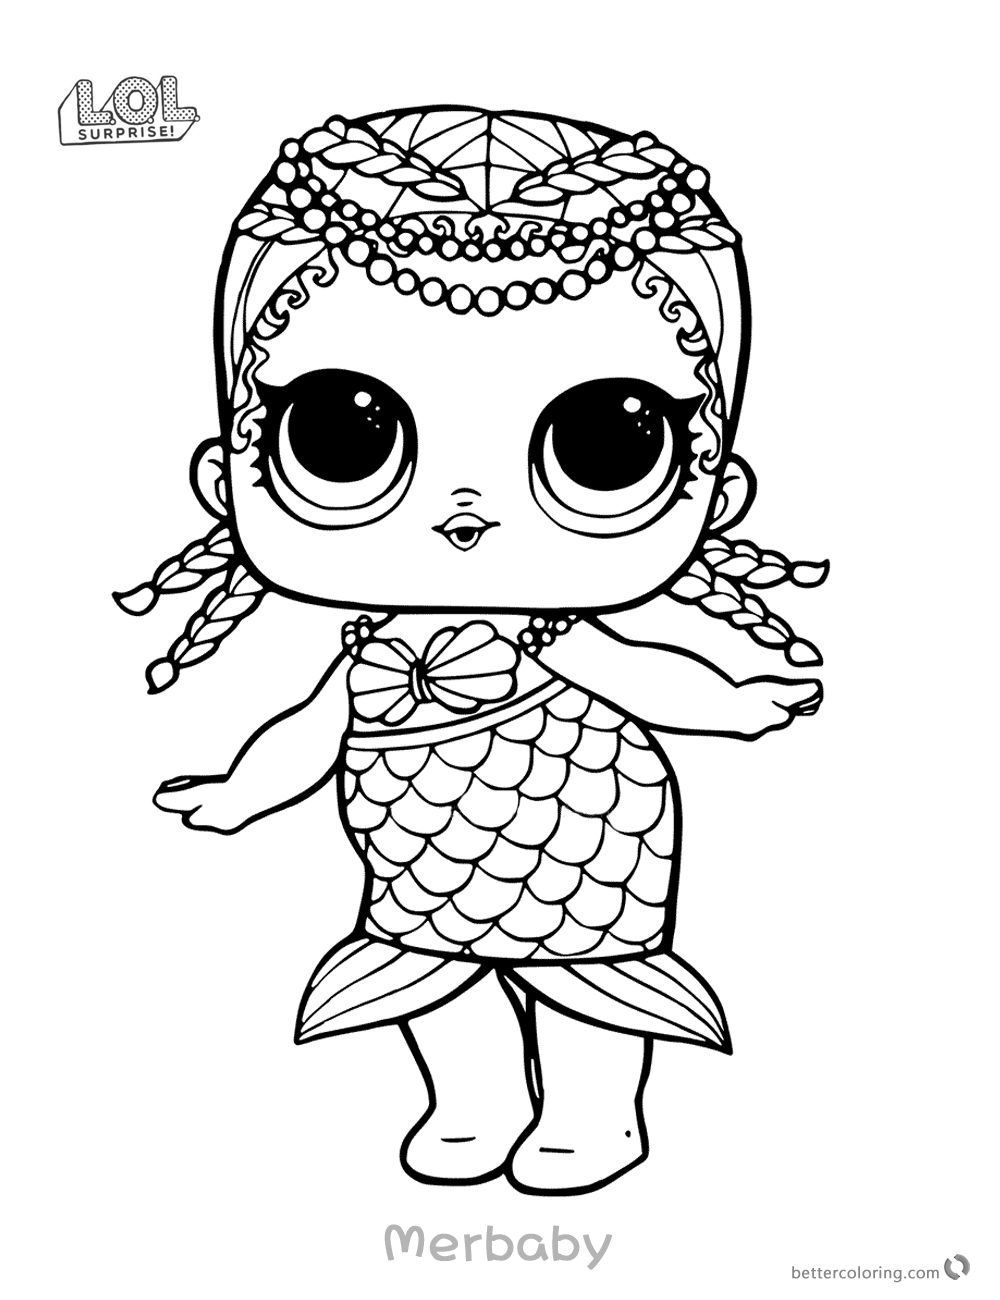 Mermaid lol surprise doll coloring pages merbaby printable